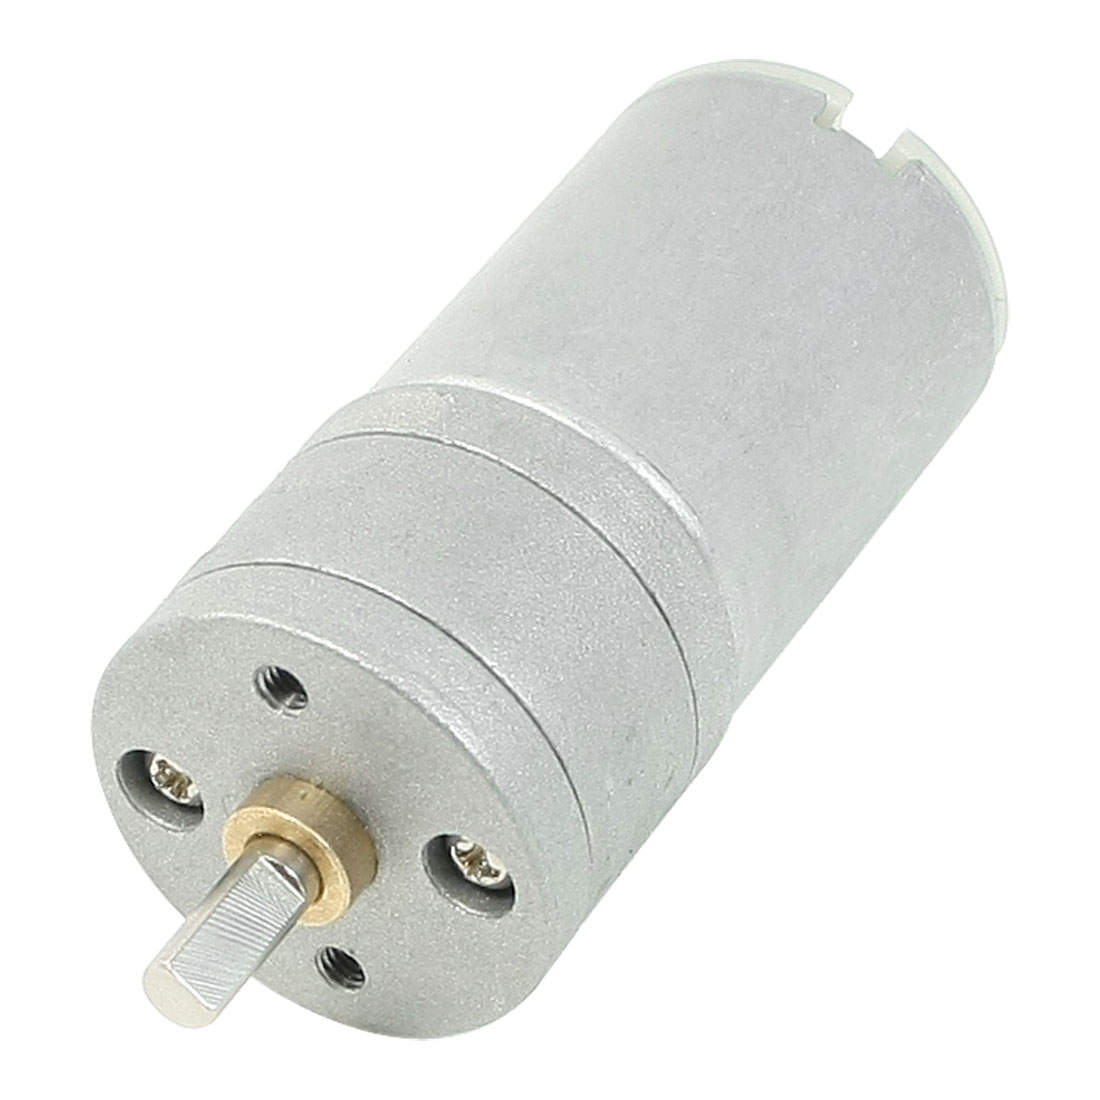 25mm 12V 30mA 10RPM Micro DC Geared Motor for Robot Electronic Toy